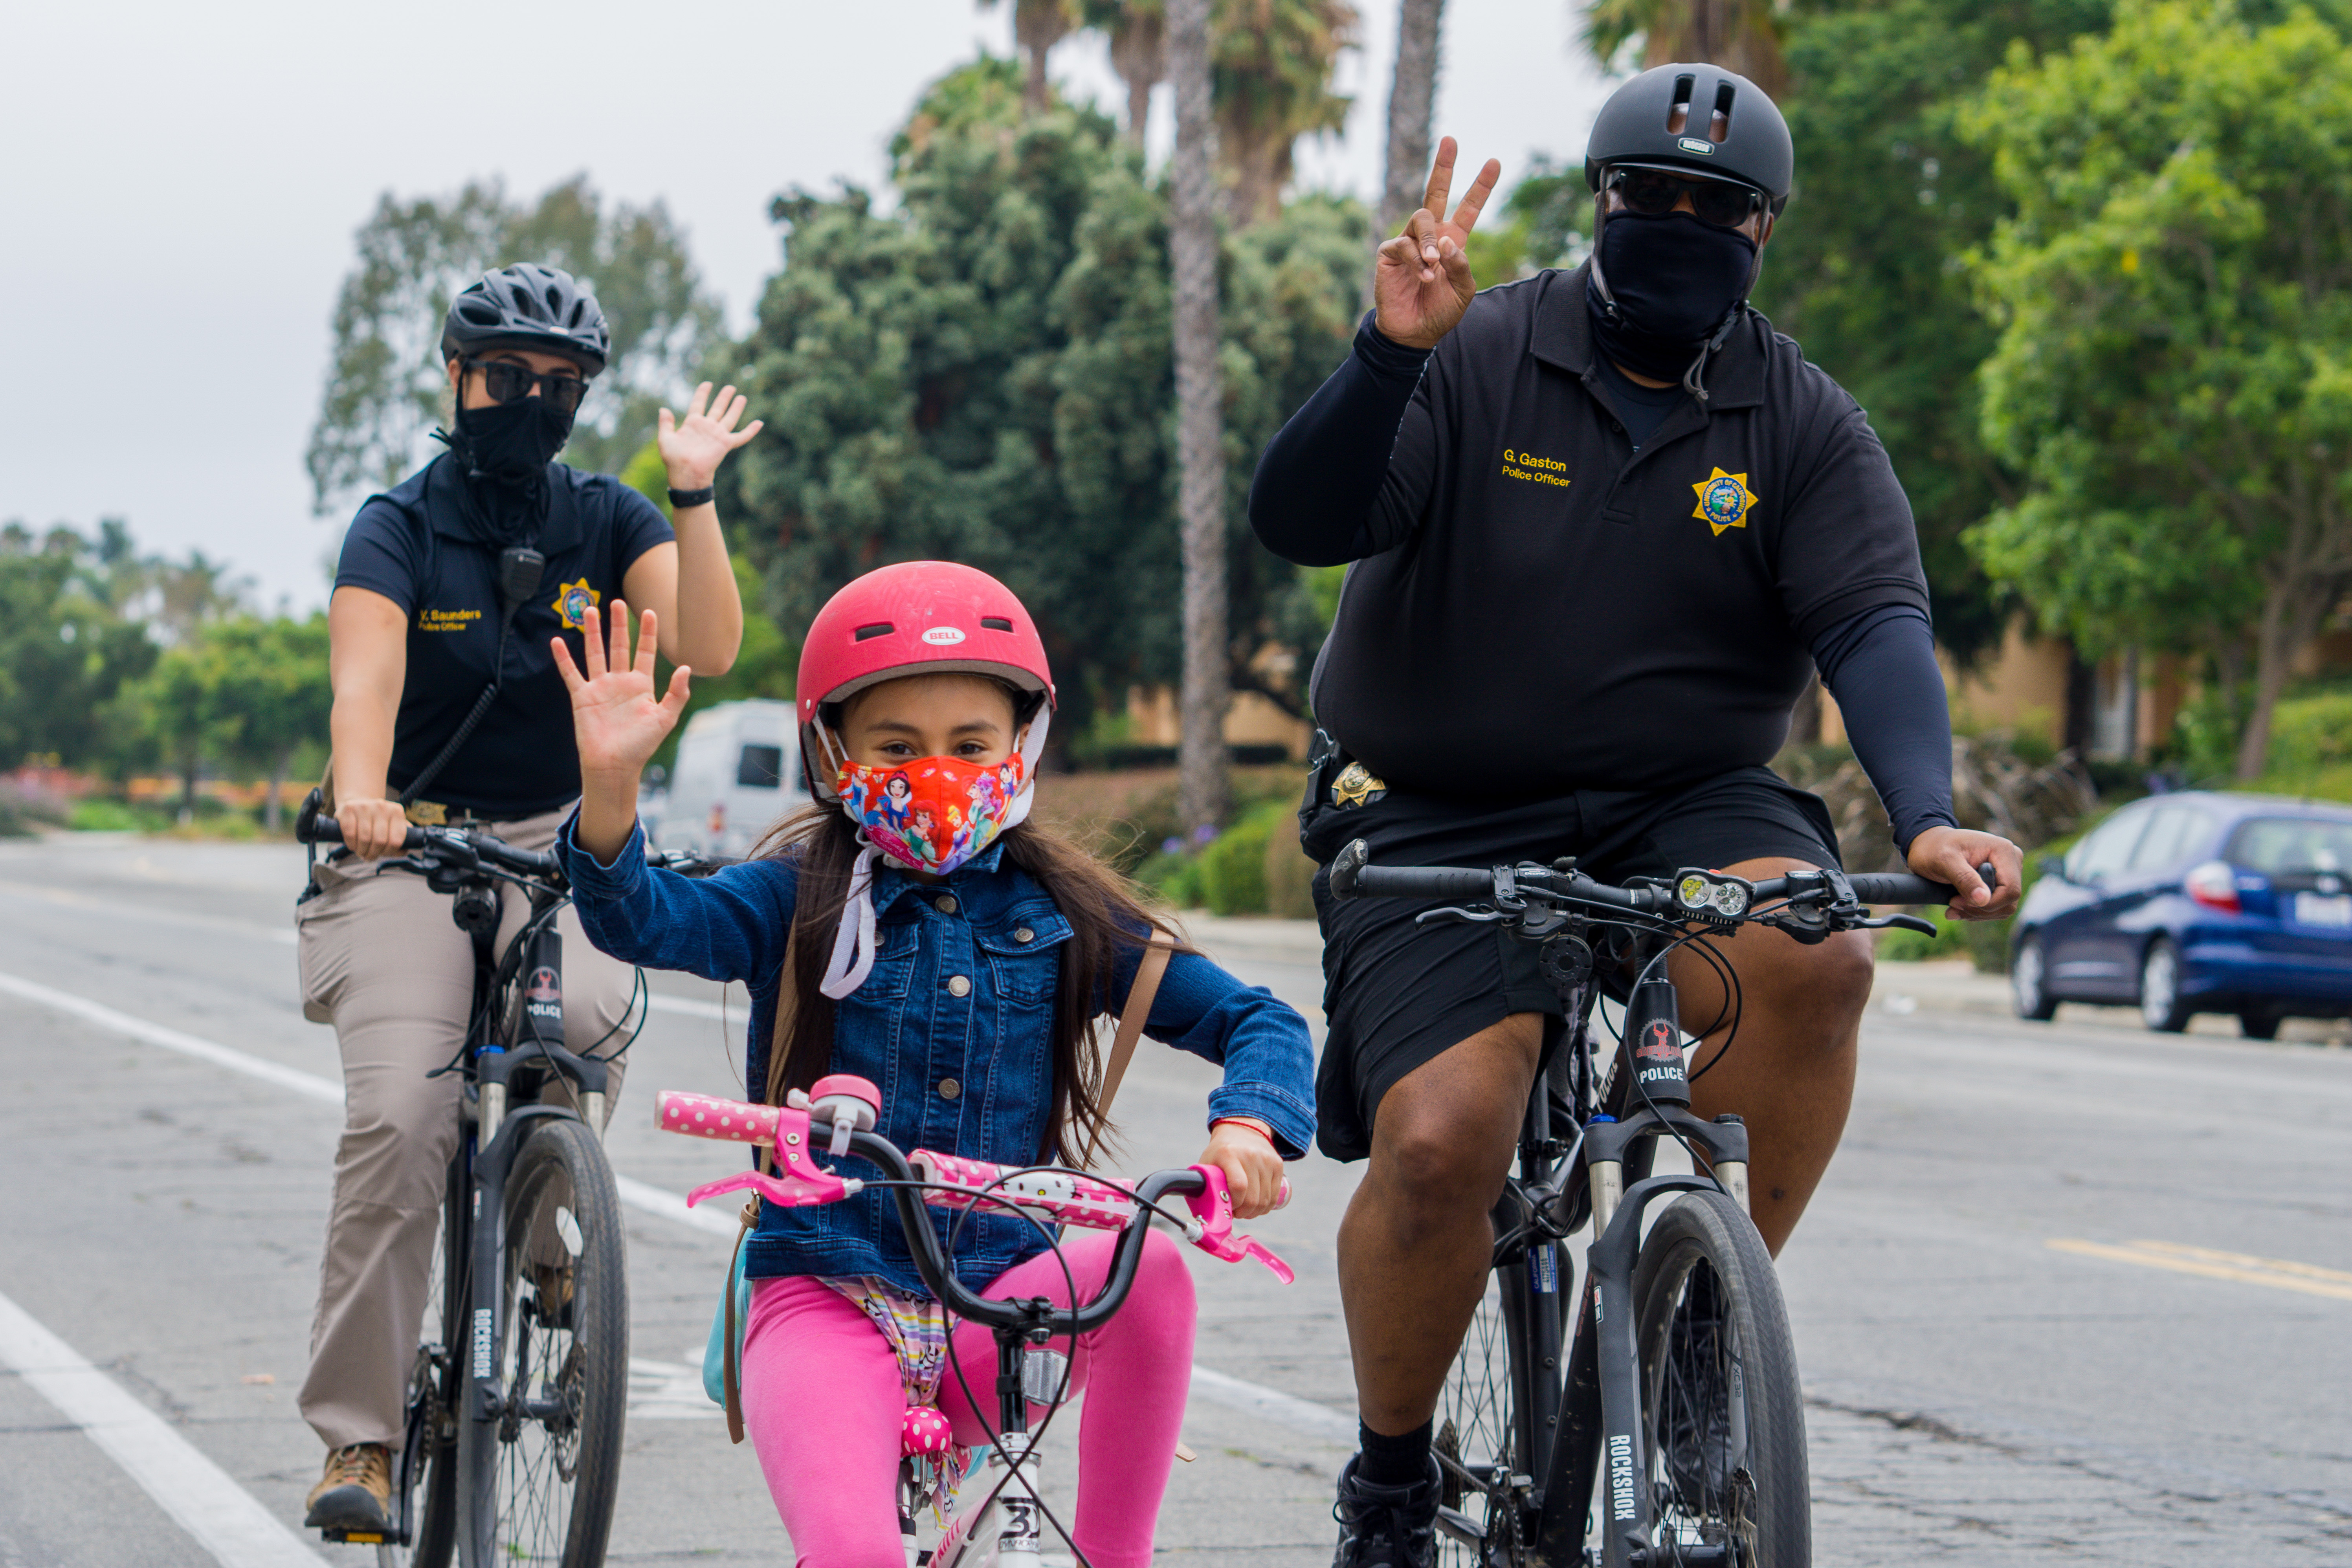 UCSB Police Officers on a socially distanced bike ride with a child